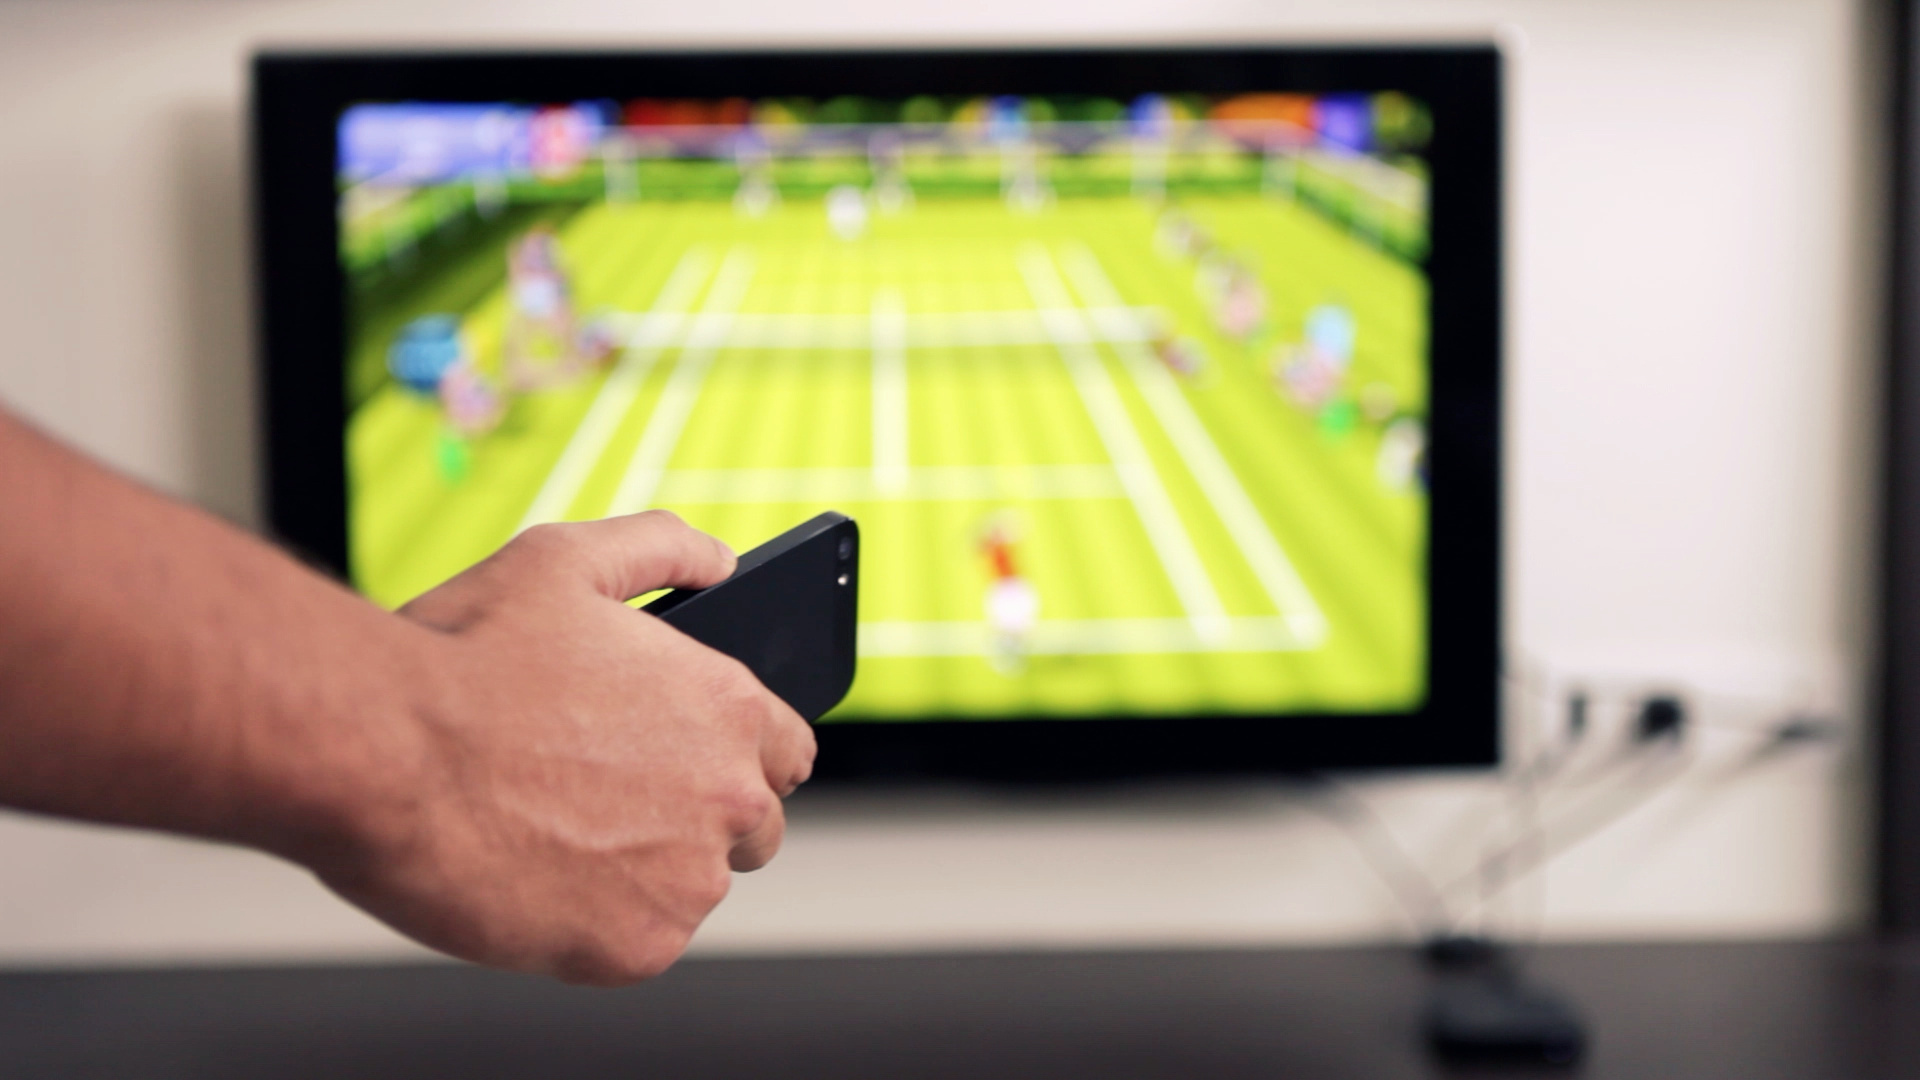 Figure 5: Motion Tennis requires an Apple TV to play, and you use the iPhone or iPod touch as a controller.